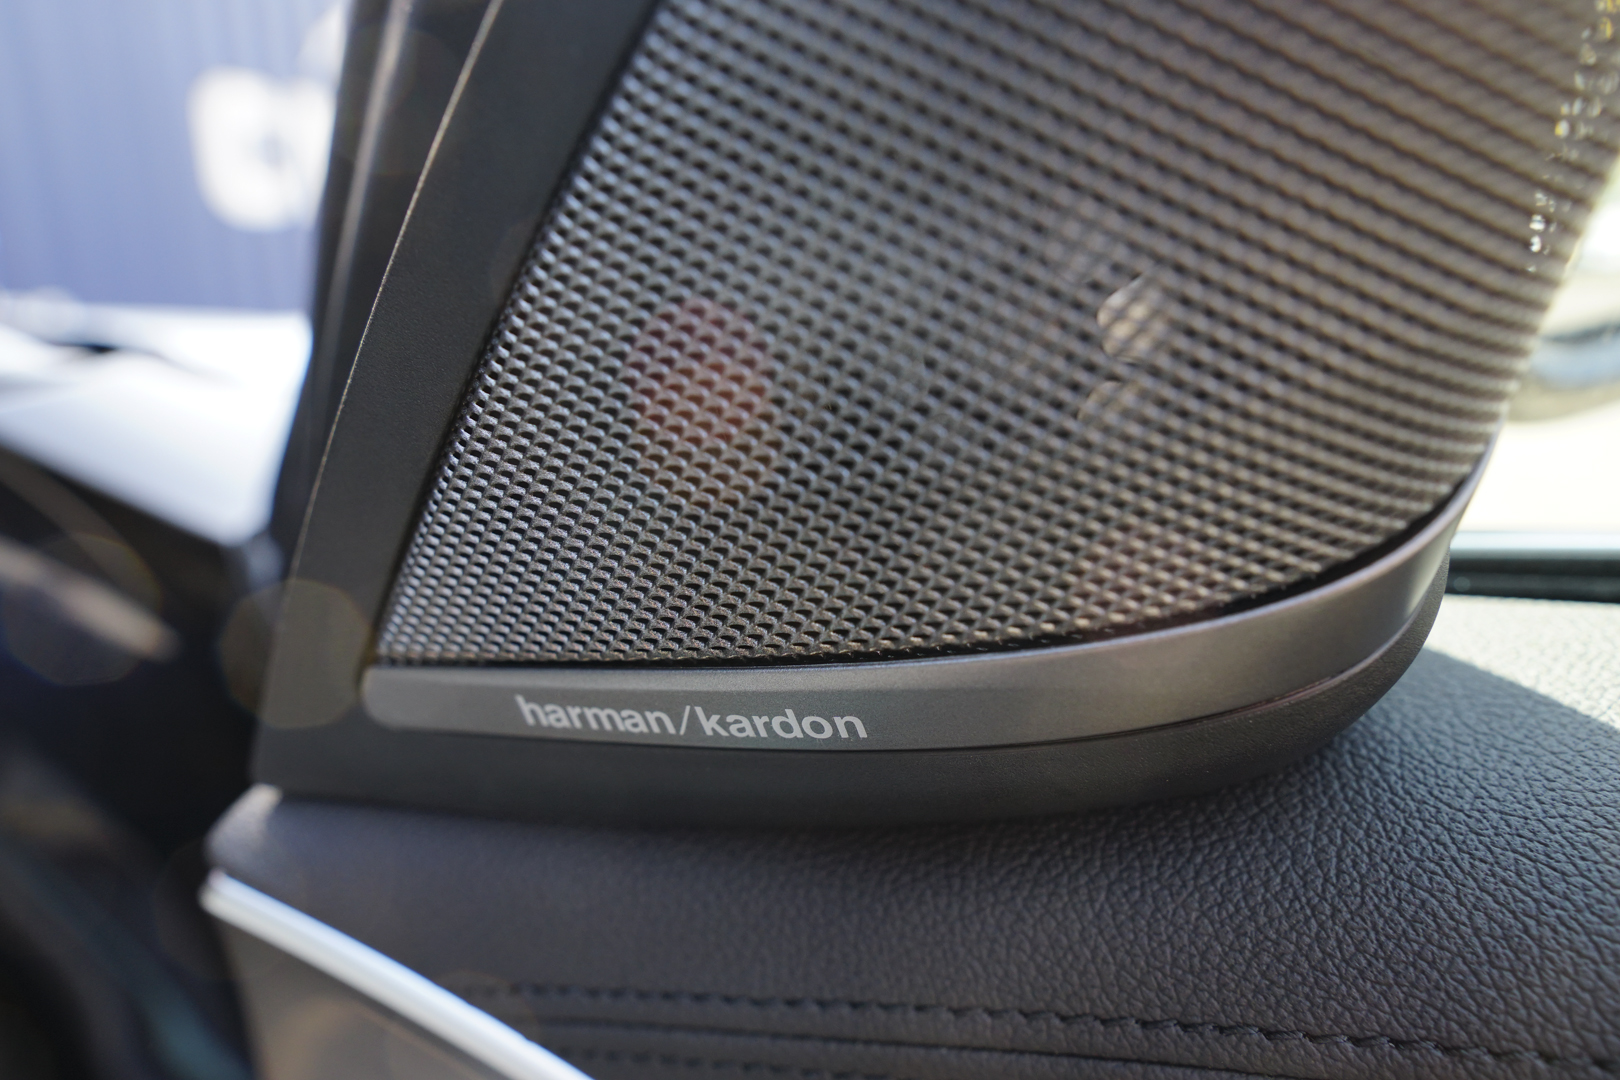 Loa Harman Kardon của BMW Series 5 2019